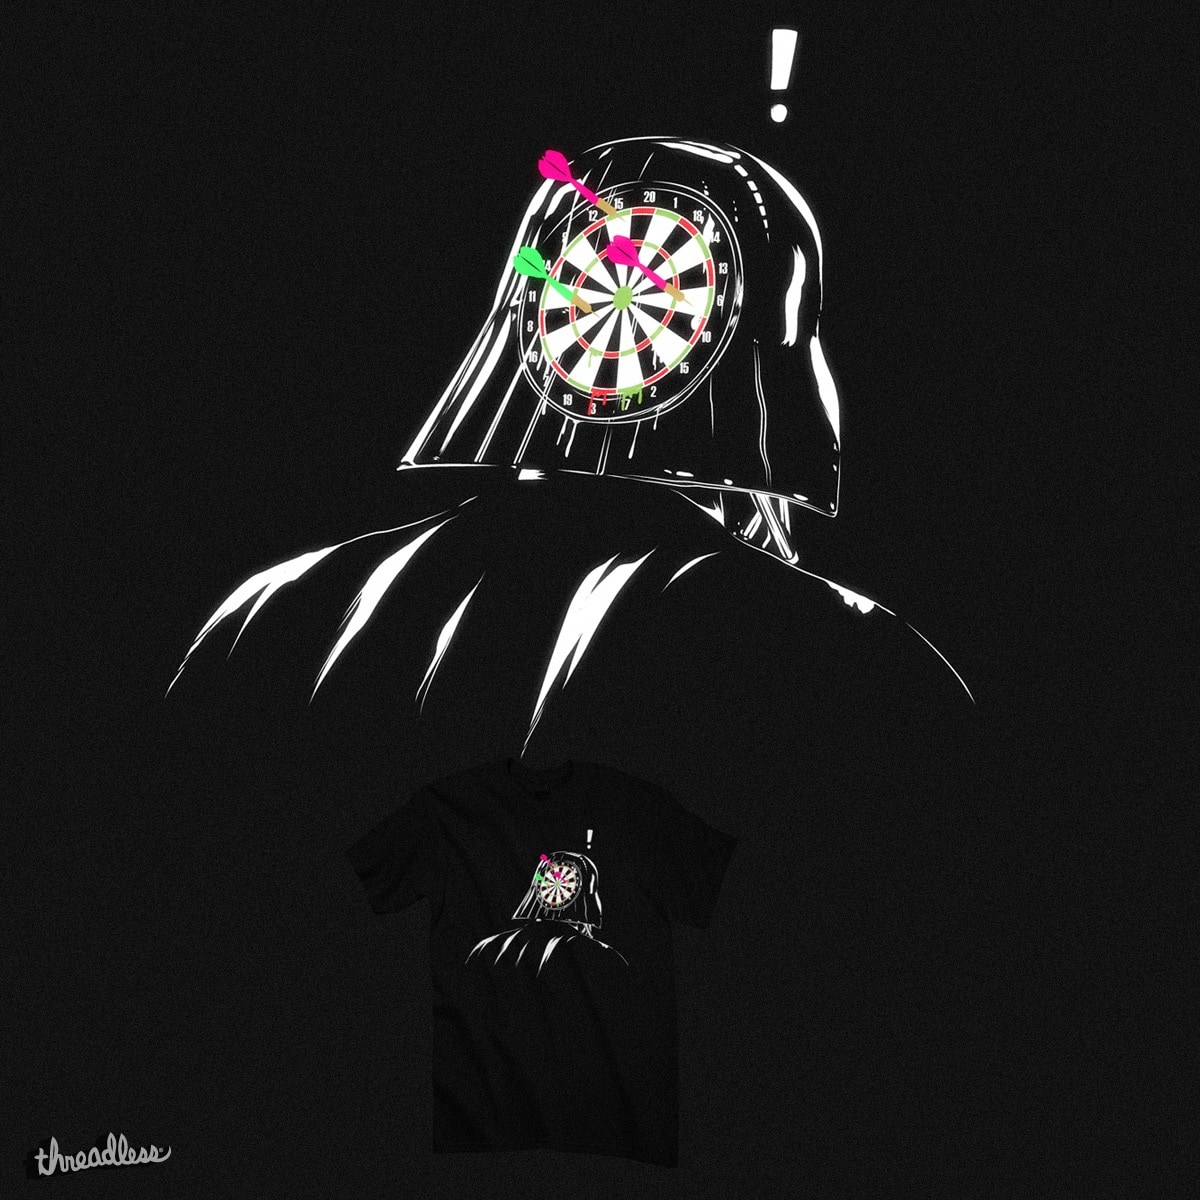 Dart Game by kooky love on Threadless